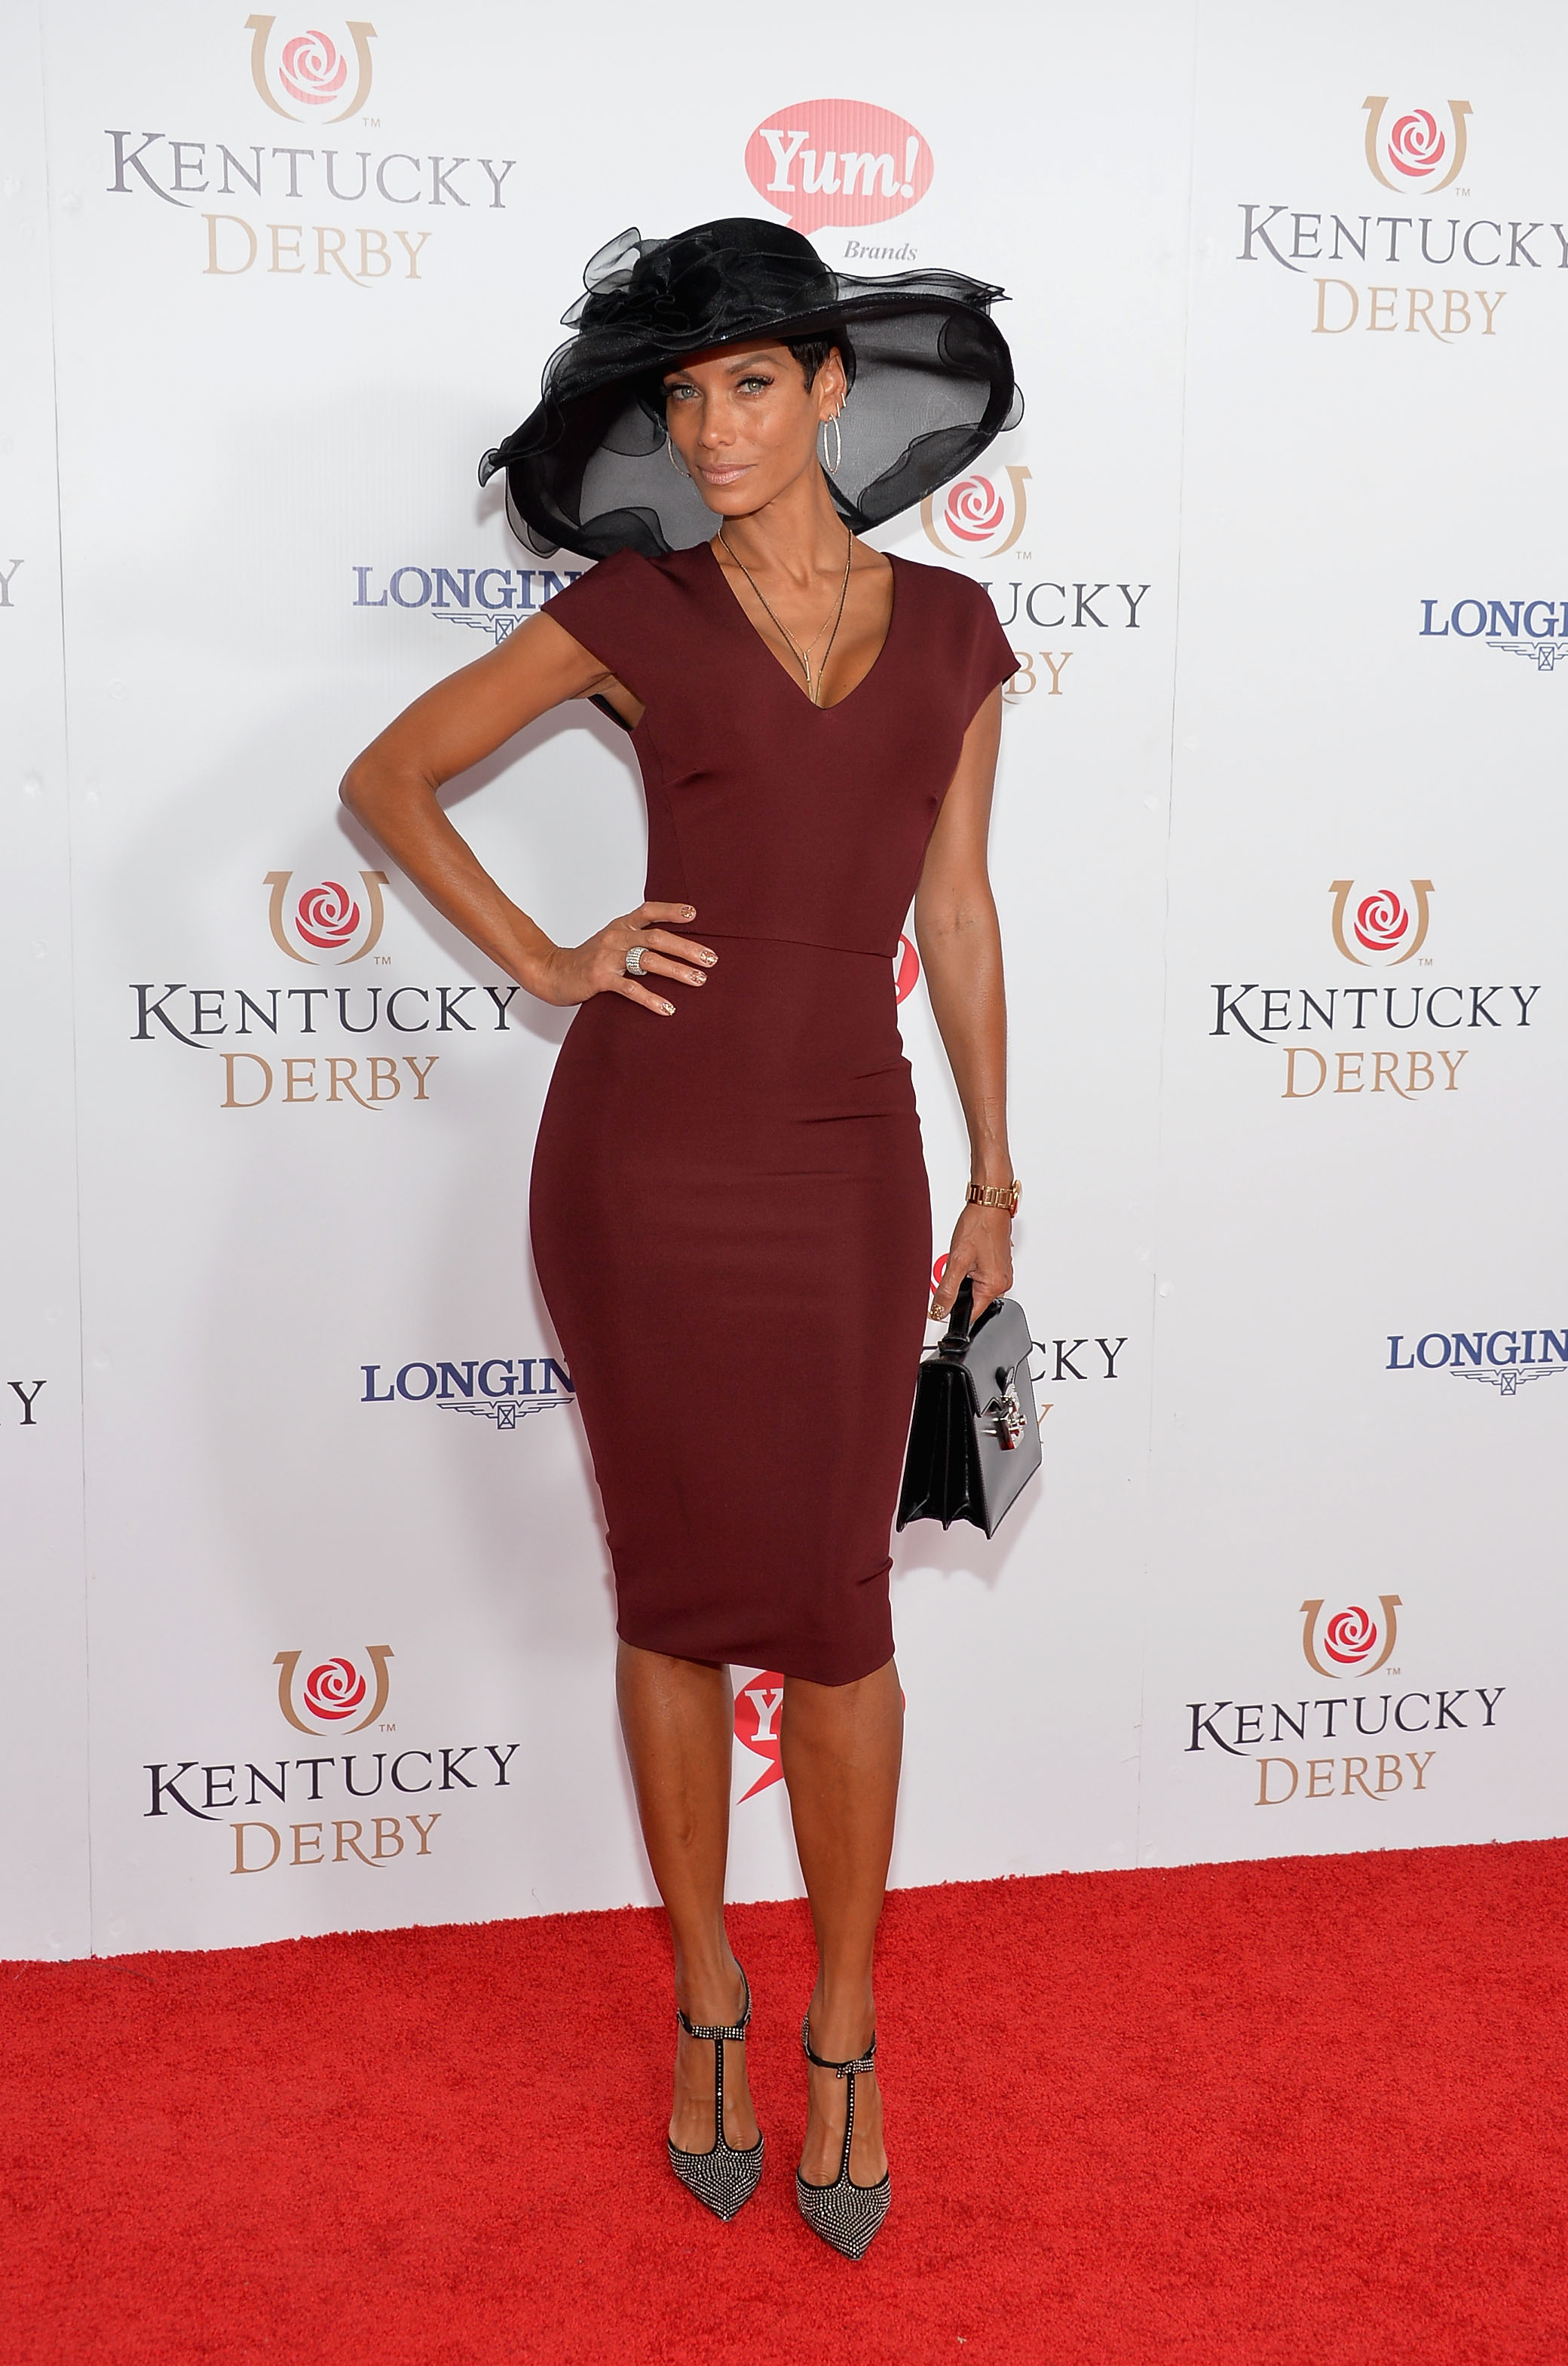 The 20 Best Kentucky Derby Dresses From Recent Years Because Hats Aren T Only Good Part